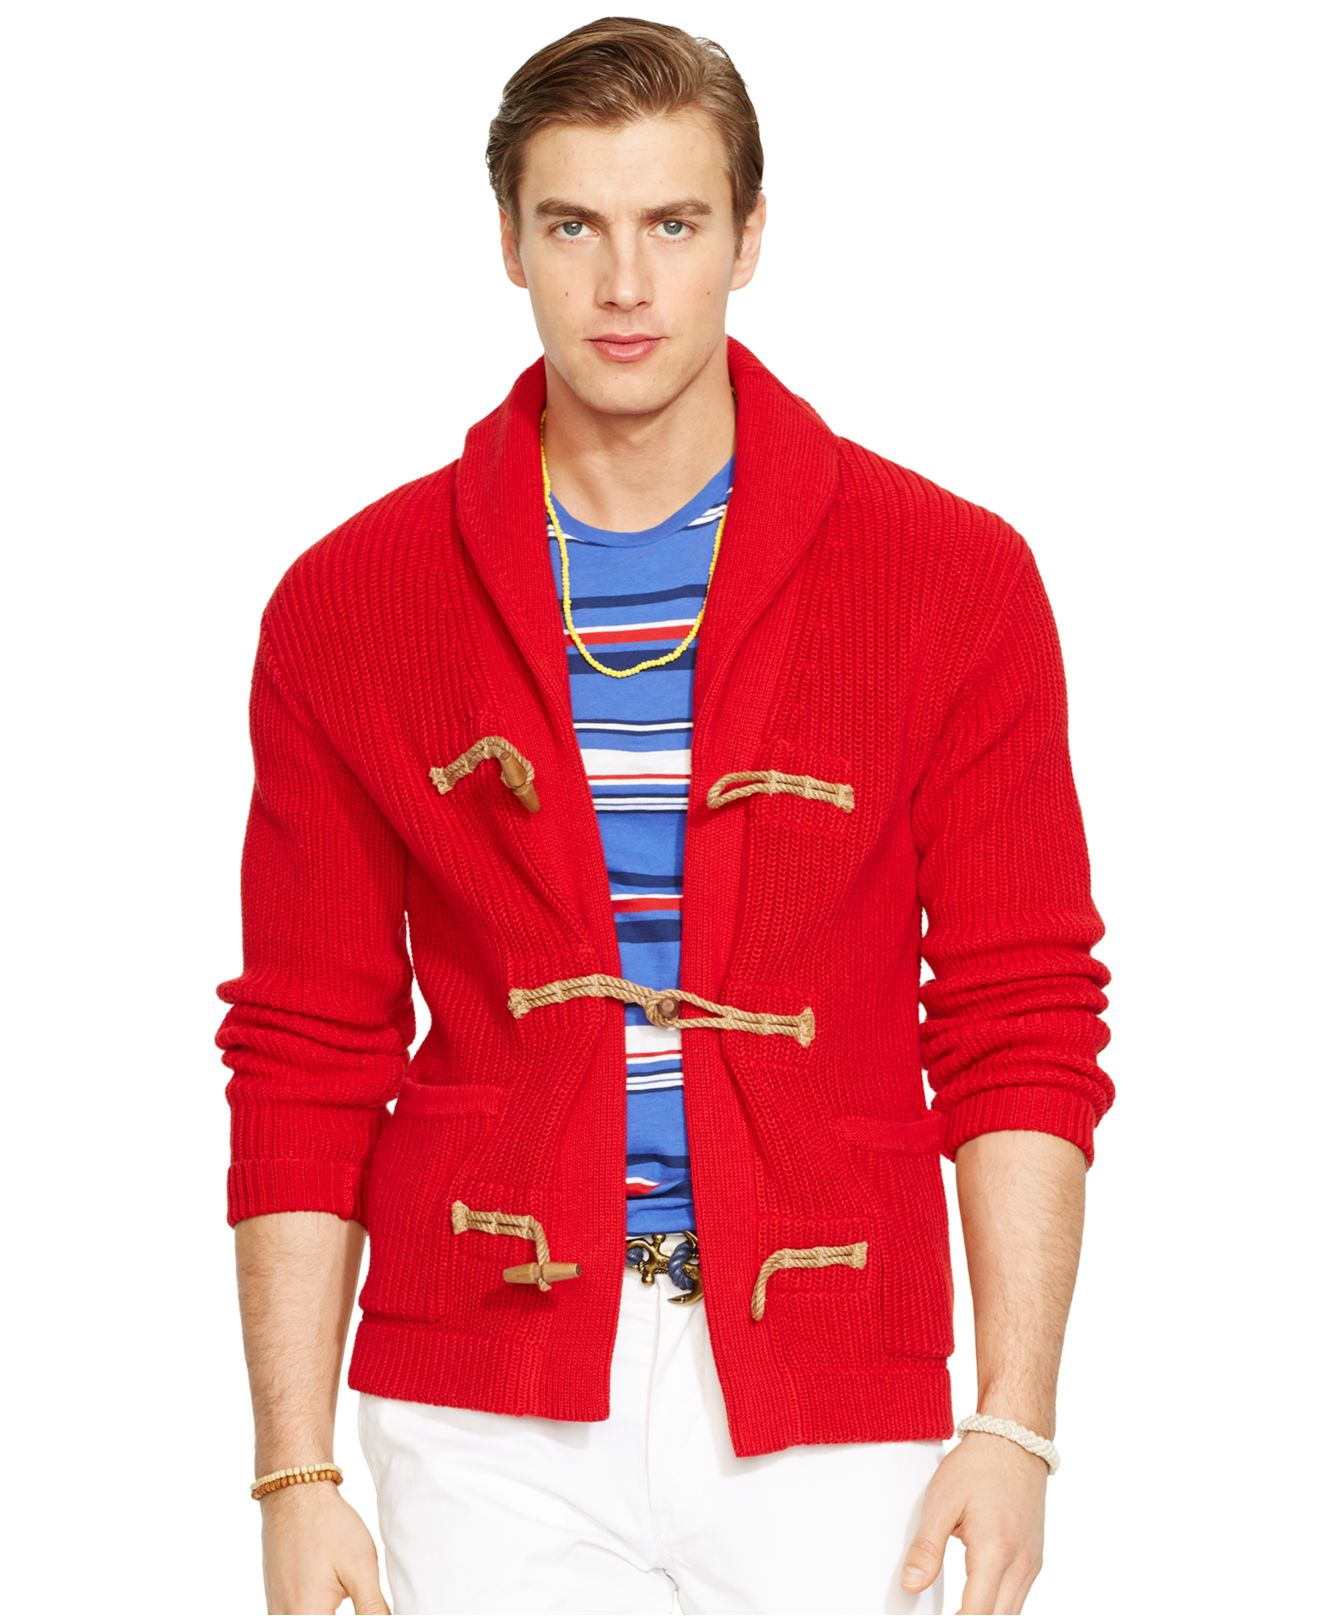 ab1a842f5 ... best lyst polo ralph lauren egyptian cotton shawl cardigan sweater in  a5f2b 06f21